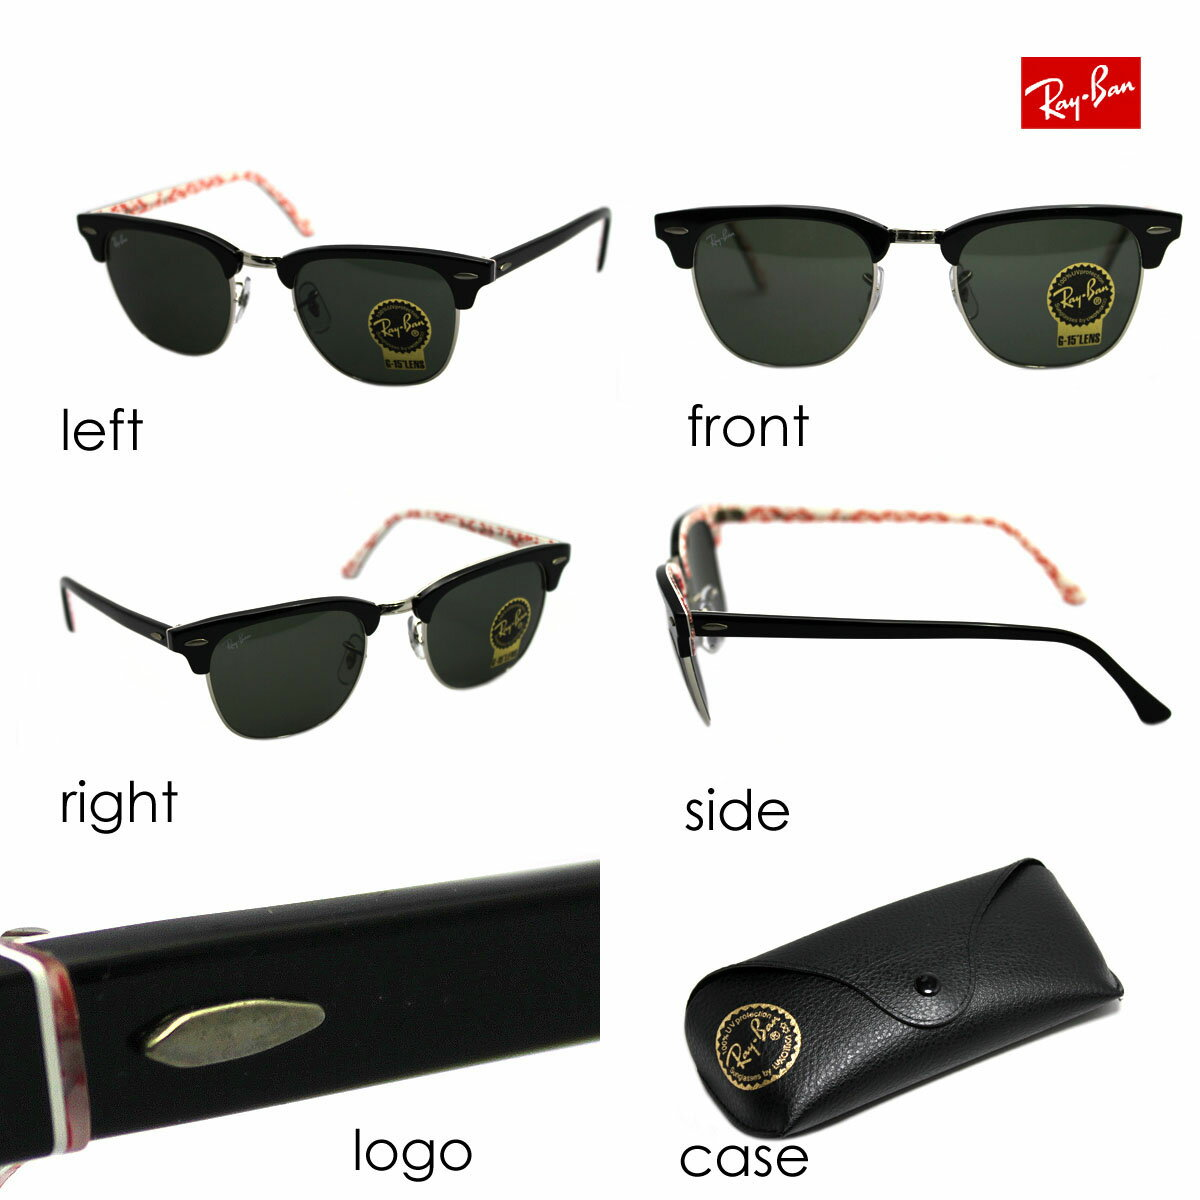 f427faf983f9 ray ban clubmaster sunglasses philippines